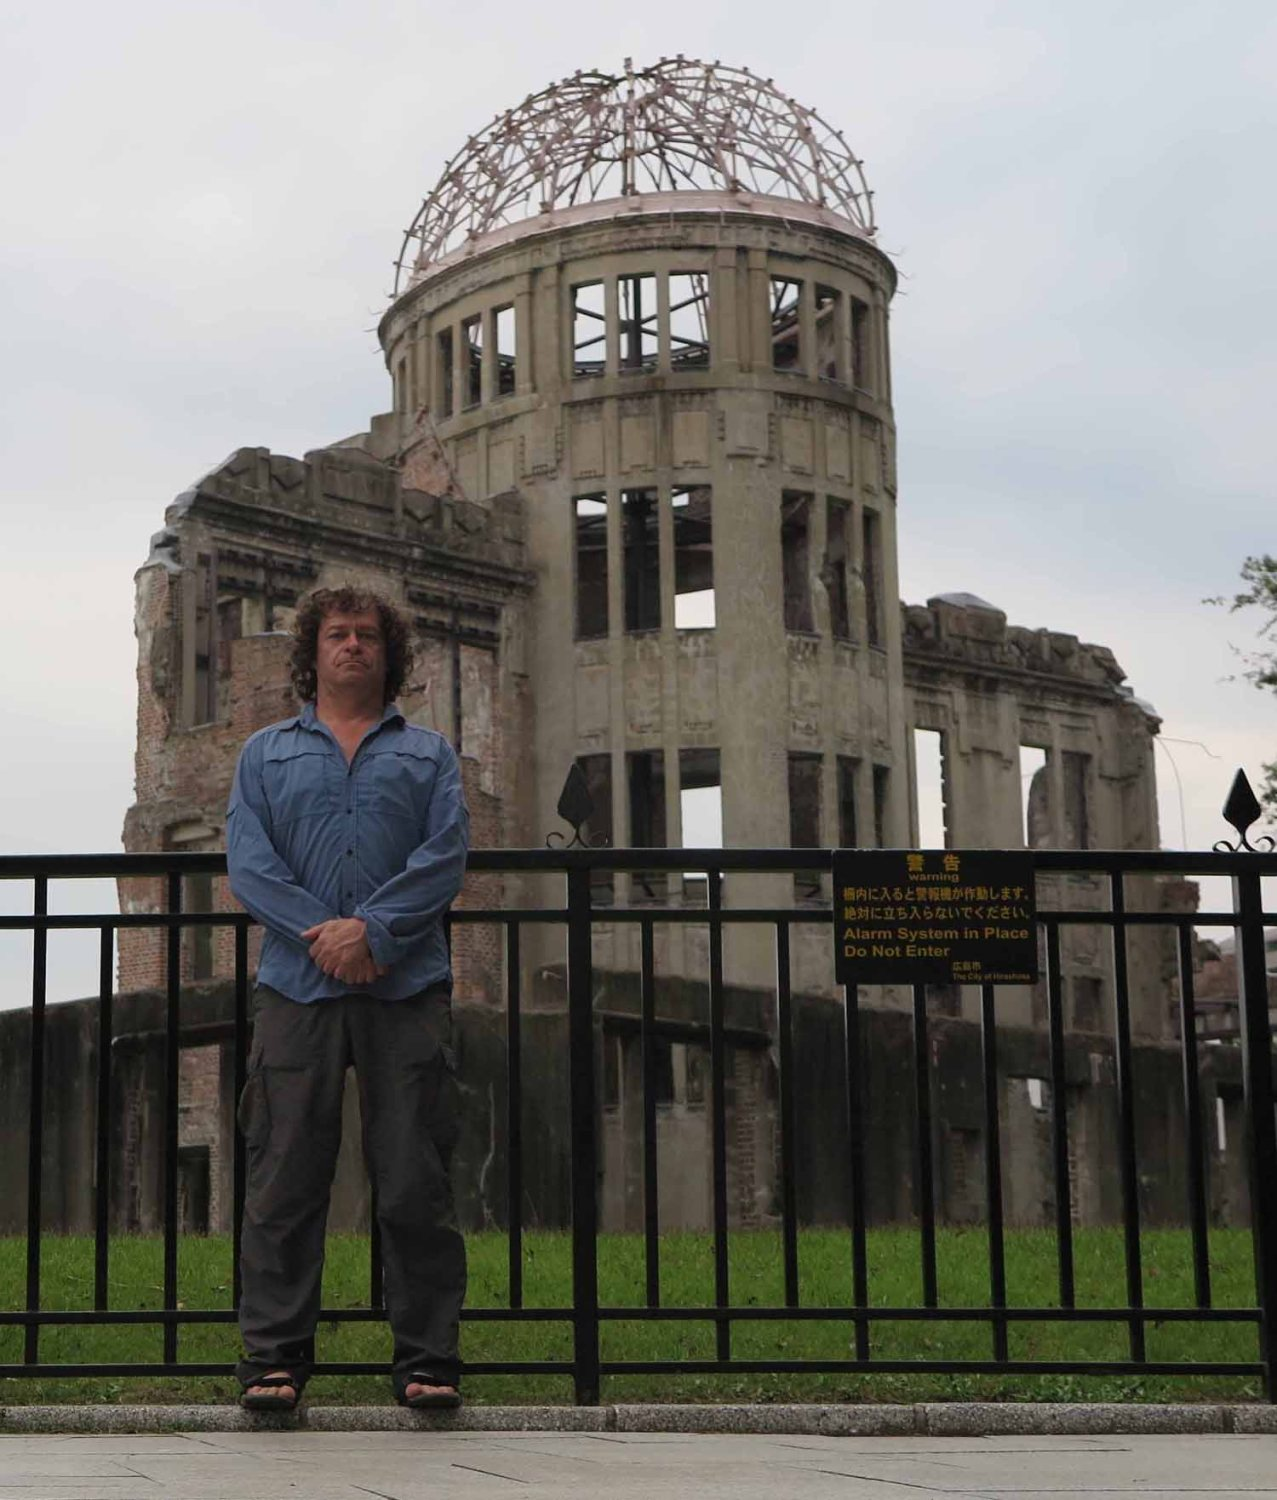 Japan-Hiroshima-Peace-Park-Dome-Frank